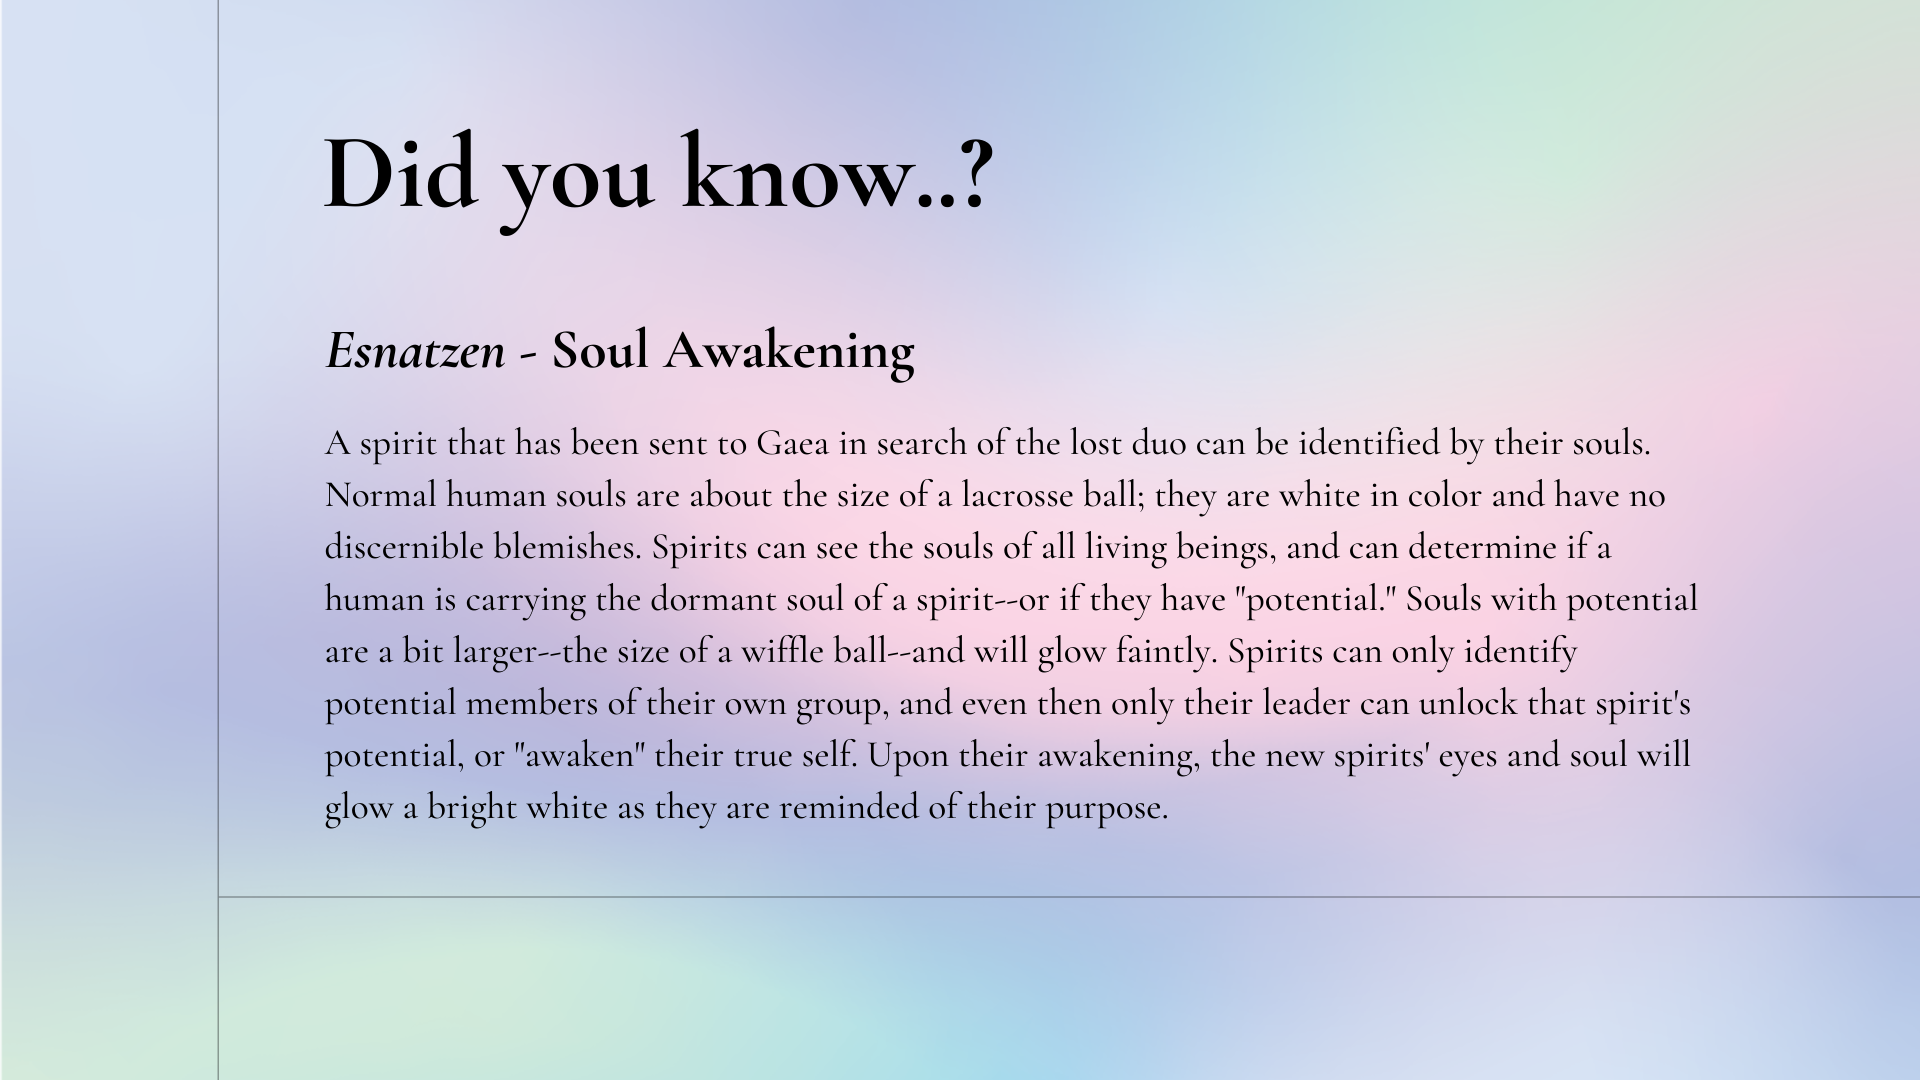 """Did you know: Esnatzen - Soul Awakening. A spirit that has been sent to Gaea in search of the lost duo can be identified by their souls. Normal human souls are about the size of a lacrosse ball; they are white in color and have no discernible blemishes. Spirits can see the souls of all living beings, and can determine if a human is carrying the dormant soul of a spirit--or if they have """"potential."""" Souls with potential are a bit larger--the size of a wiffle ball--and will glow faintly. Spirits can only identify potential members of their own group, and even then only their leader can unlock that spirit's potential, or """"awaken"""" their true self. Upon their awakening, the new spirits' eyes and soul will glow a bright white as they are reminded of their purpose."""